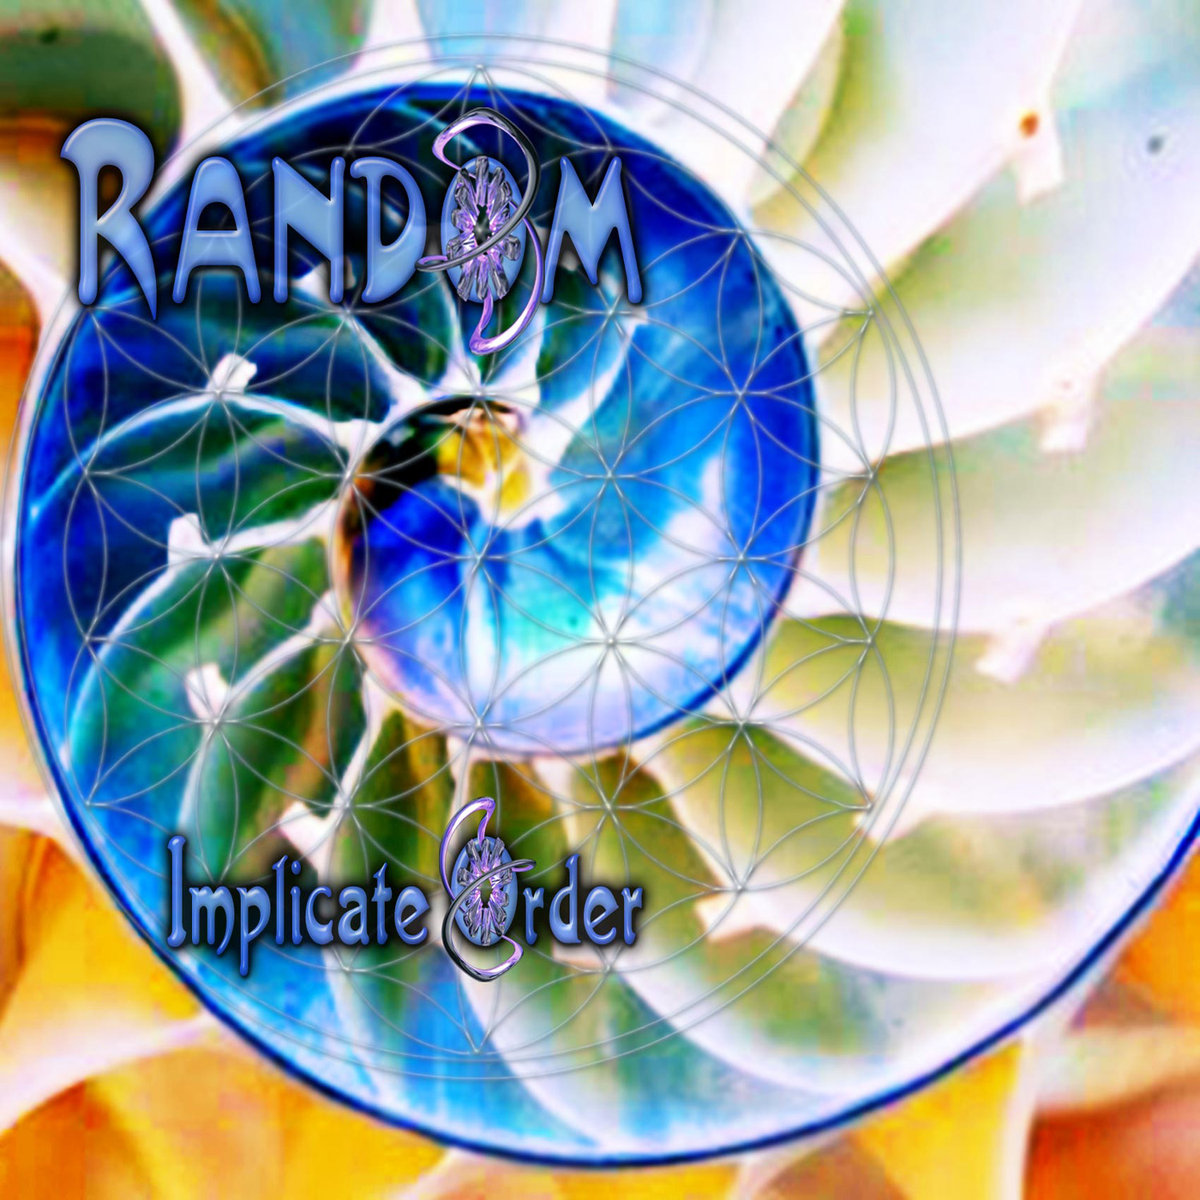 Random - Intentionality @ 'The Implicate Order' album (electronic, goa)